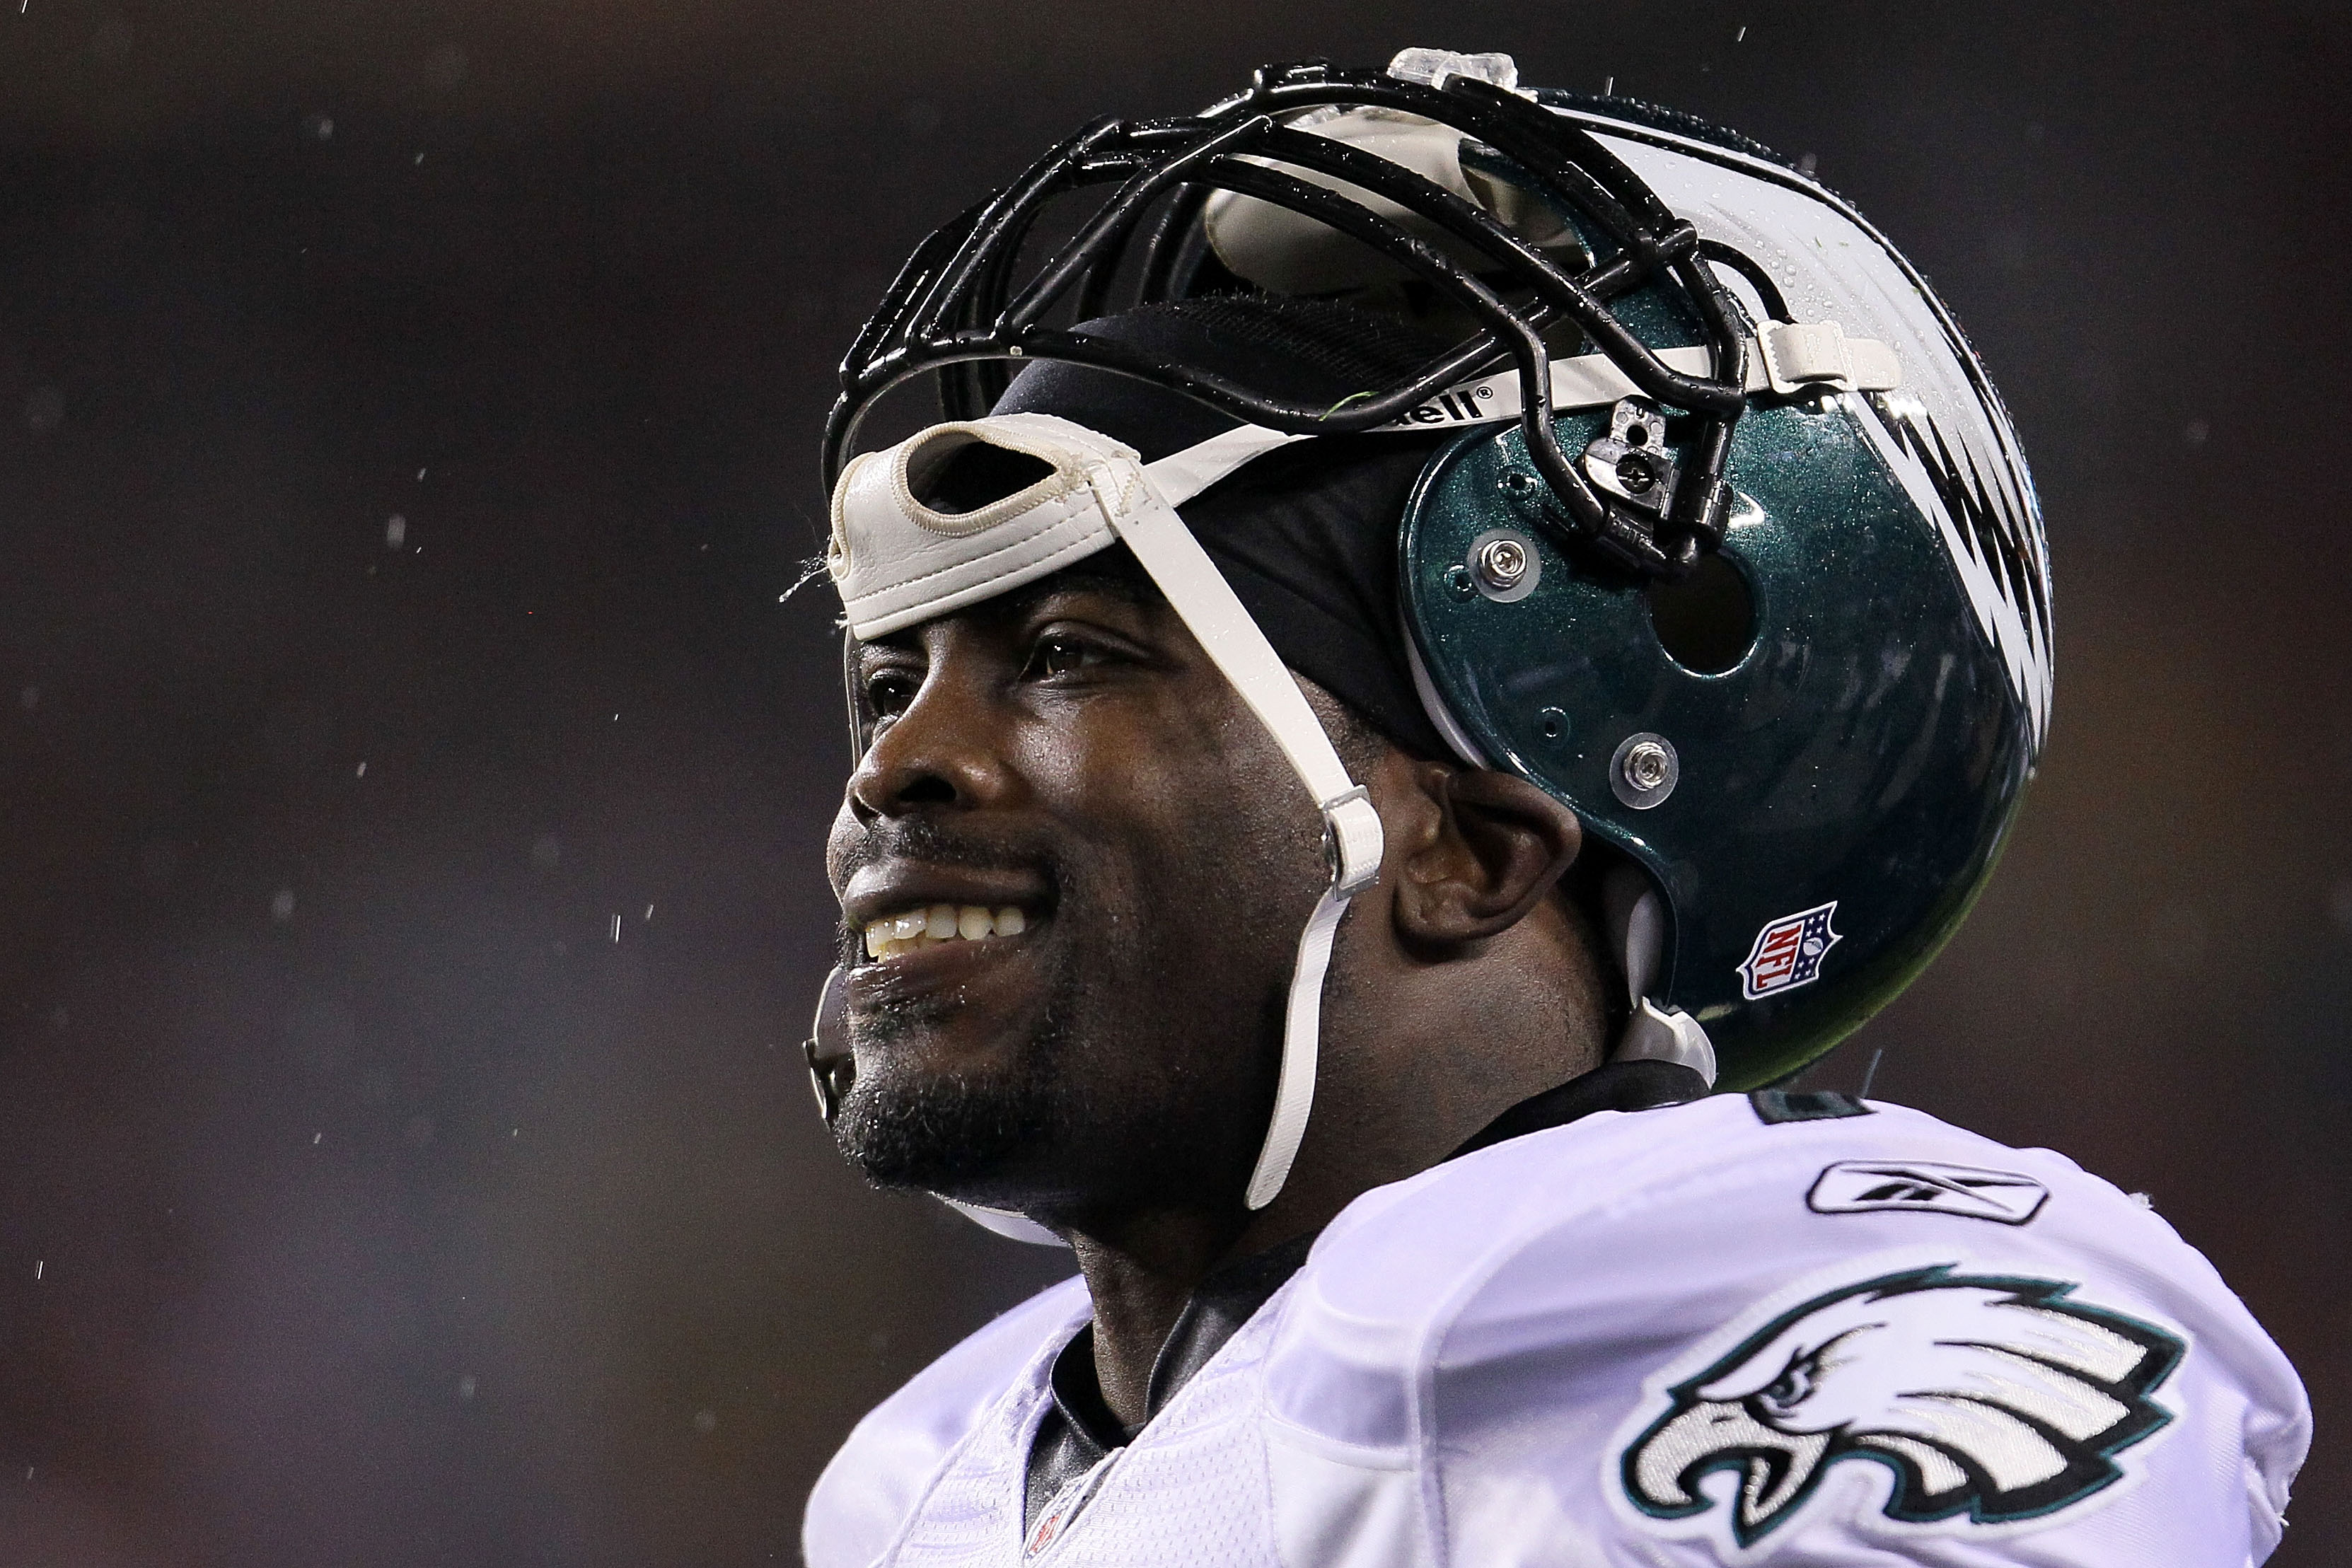 LANDOVER, MD - NOVEMBER 15:  Michael Vick #7 of the Philadelphia Eagles looks on while waiting for a review to be completed against  the Washington Redskins on November 15, 2010 at FedExField in Landover, Maryland.  (Photo by Chris McGrath/Getty Images)